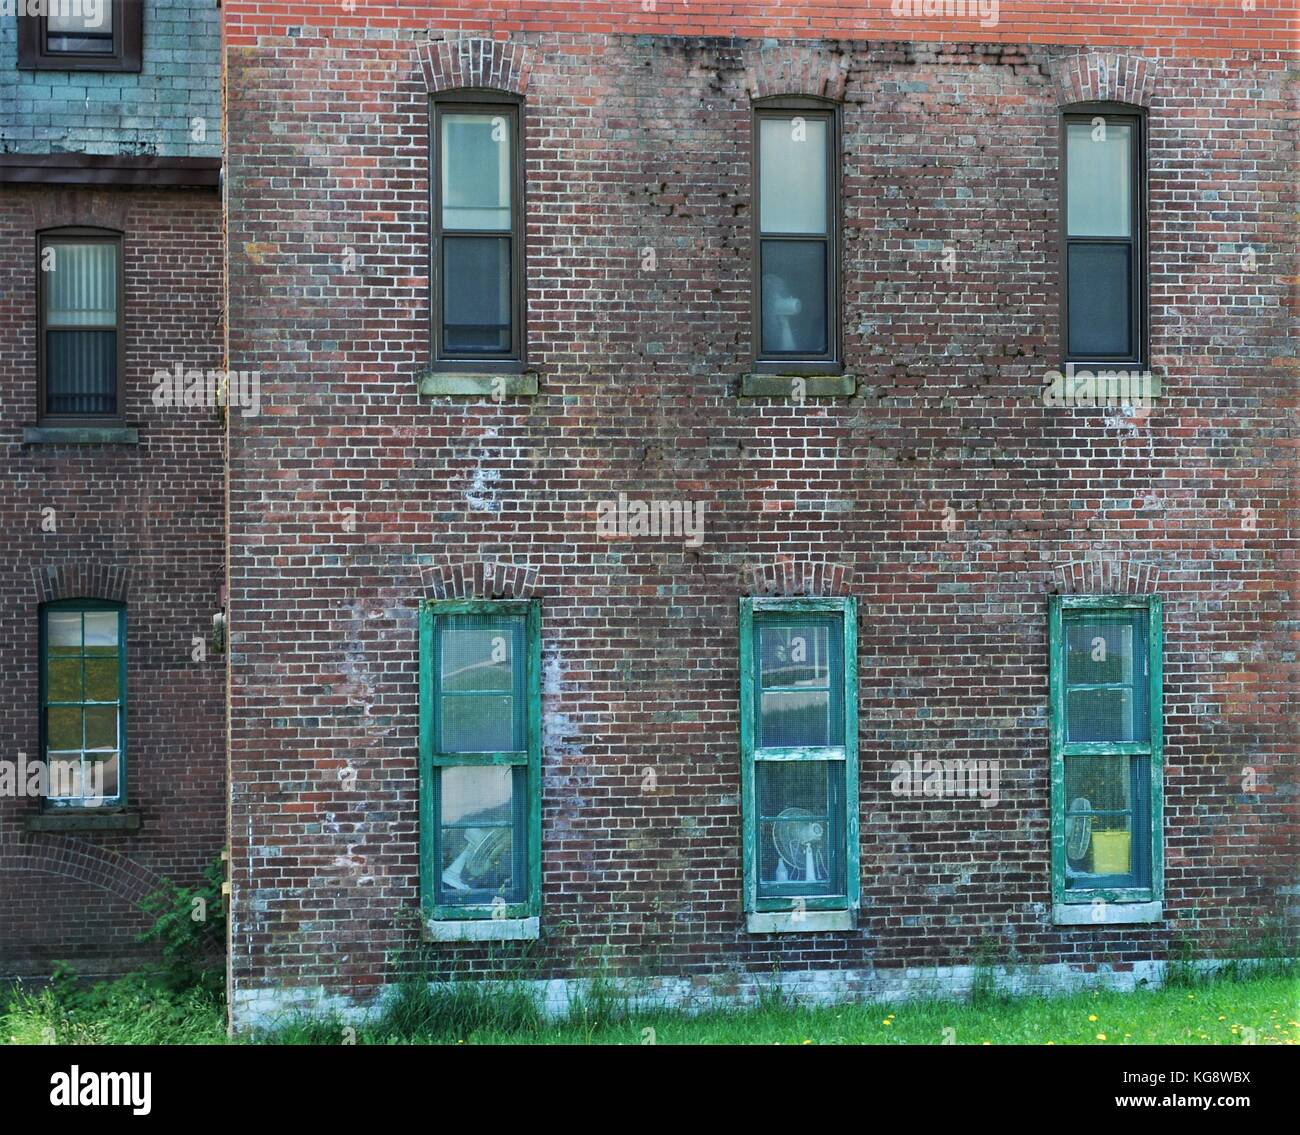 Exterior wall of old brick building, with old, wood framed windows Stock Photo